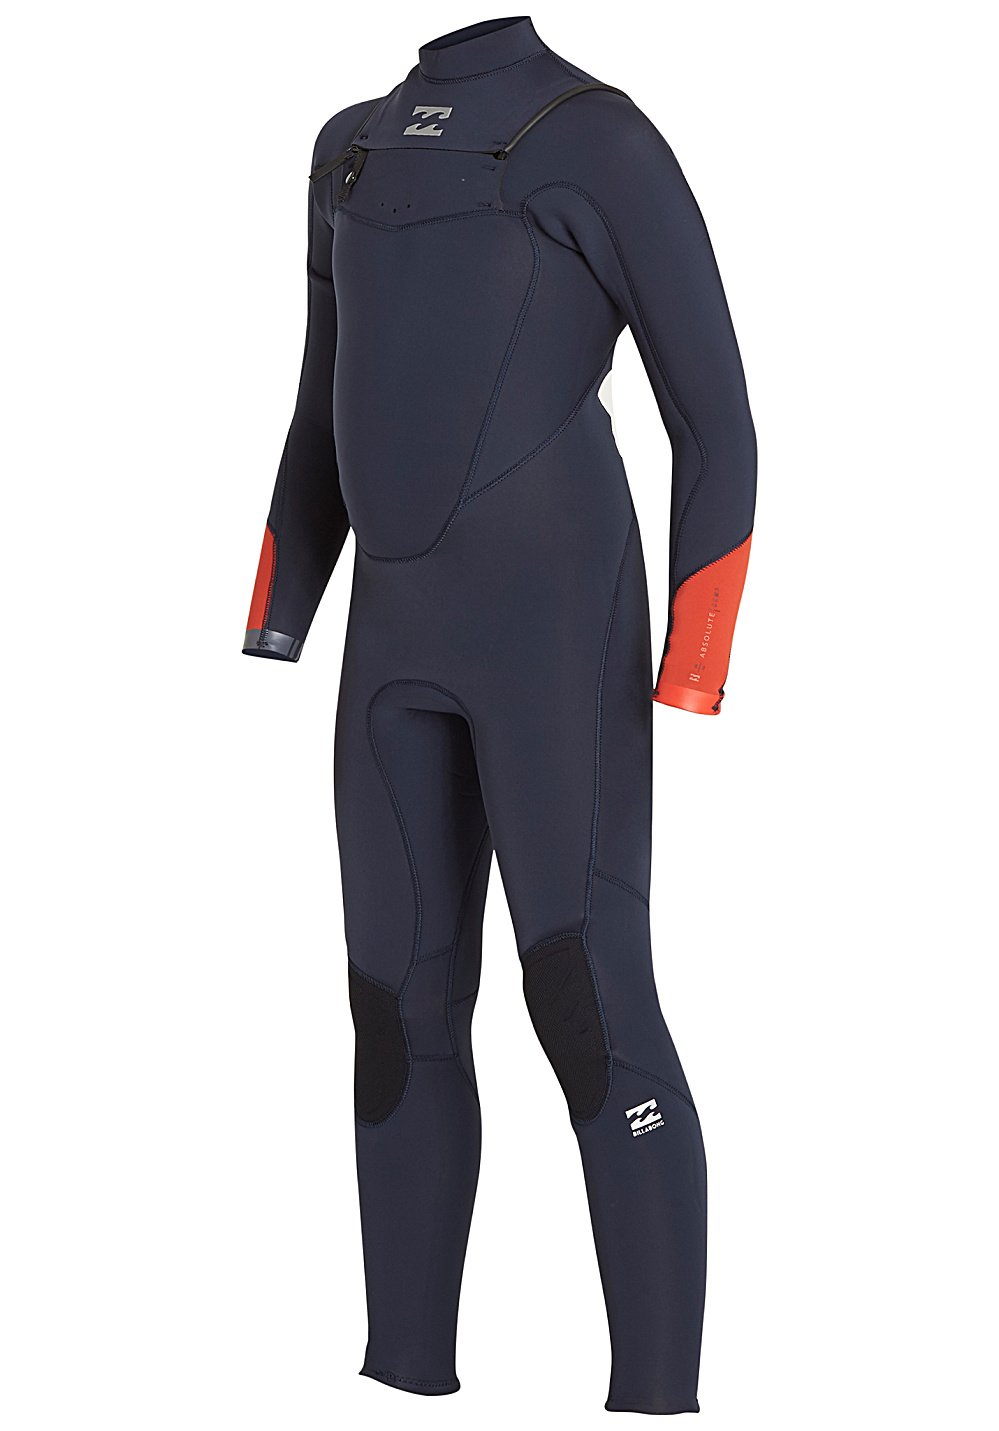 051f789027 Amazon.com   Billabong Boys Absolute Comp 4 3MM Chest Zip Wetsuit Slate  Blue - Easy Stretch Thermal Lining - Unisex   Sports   Outdoors